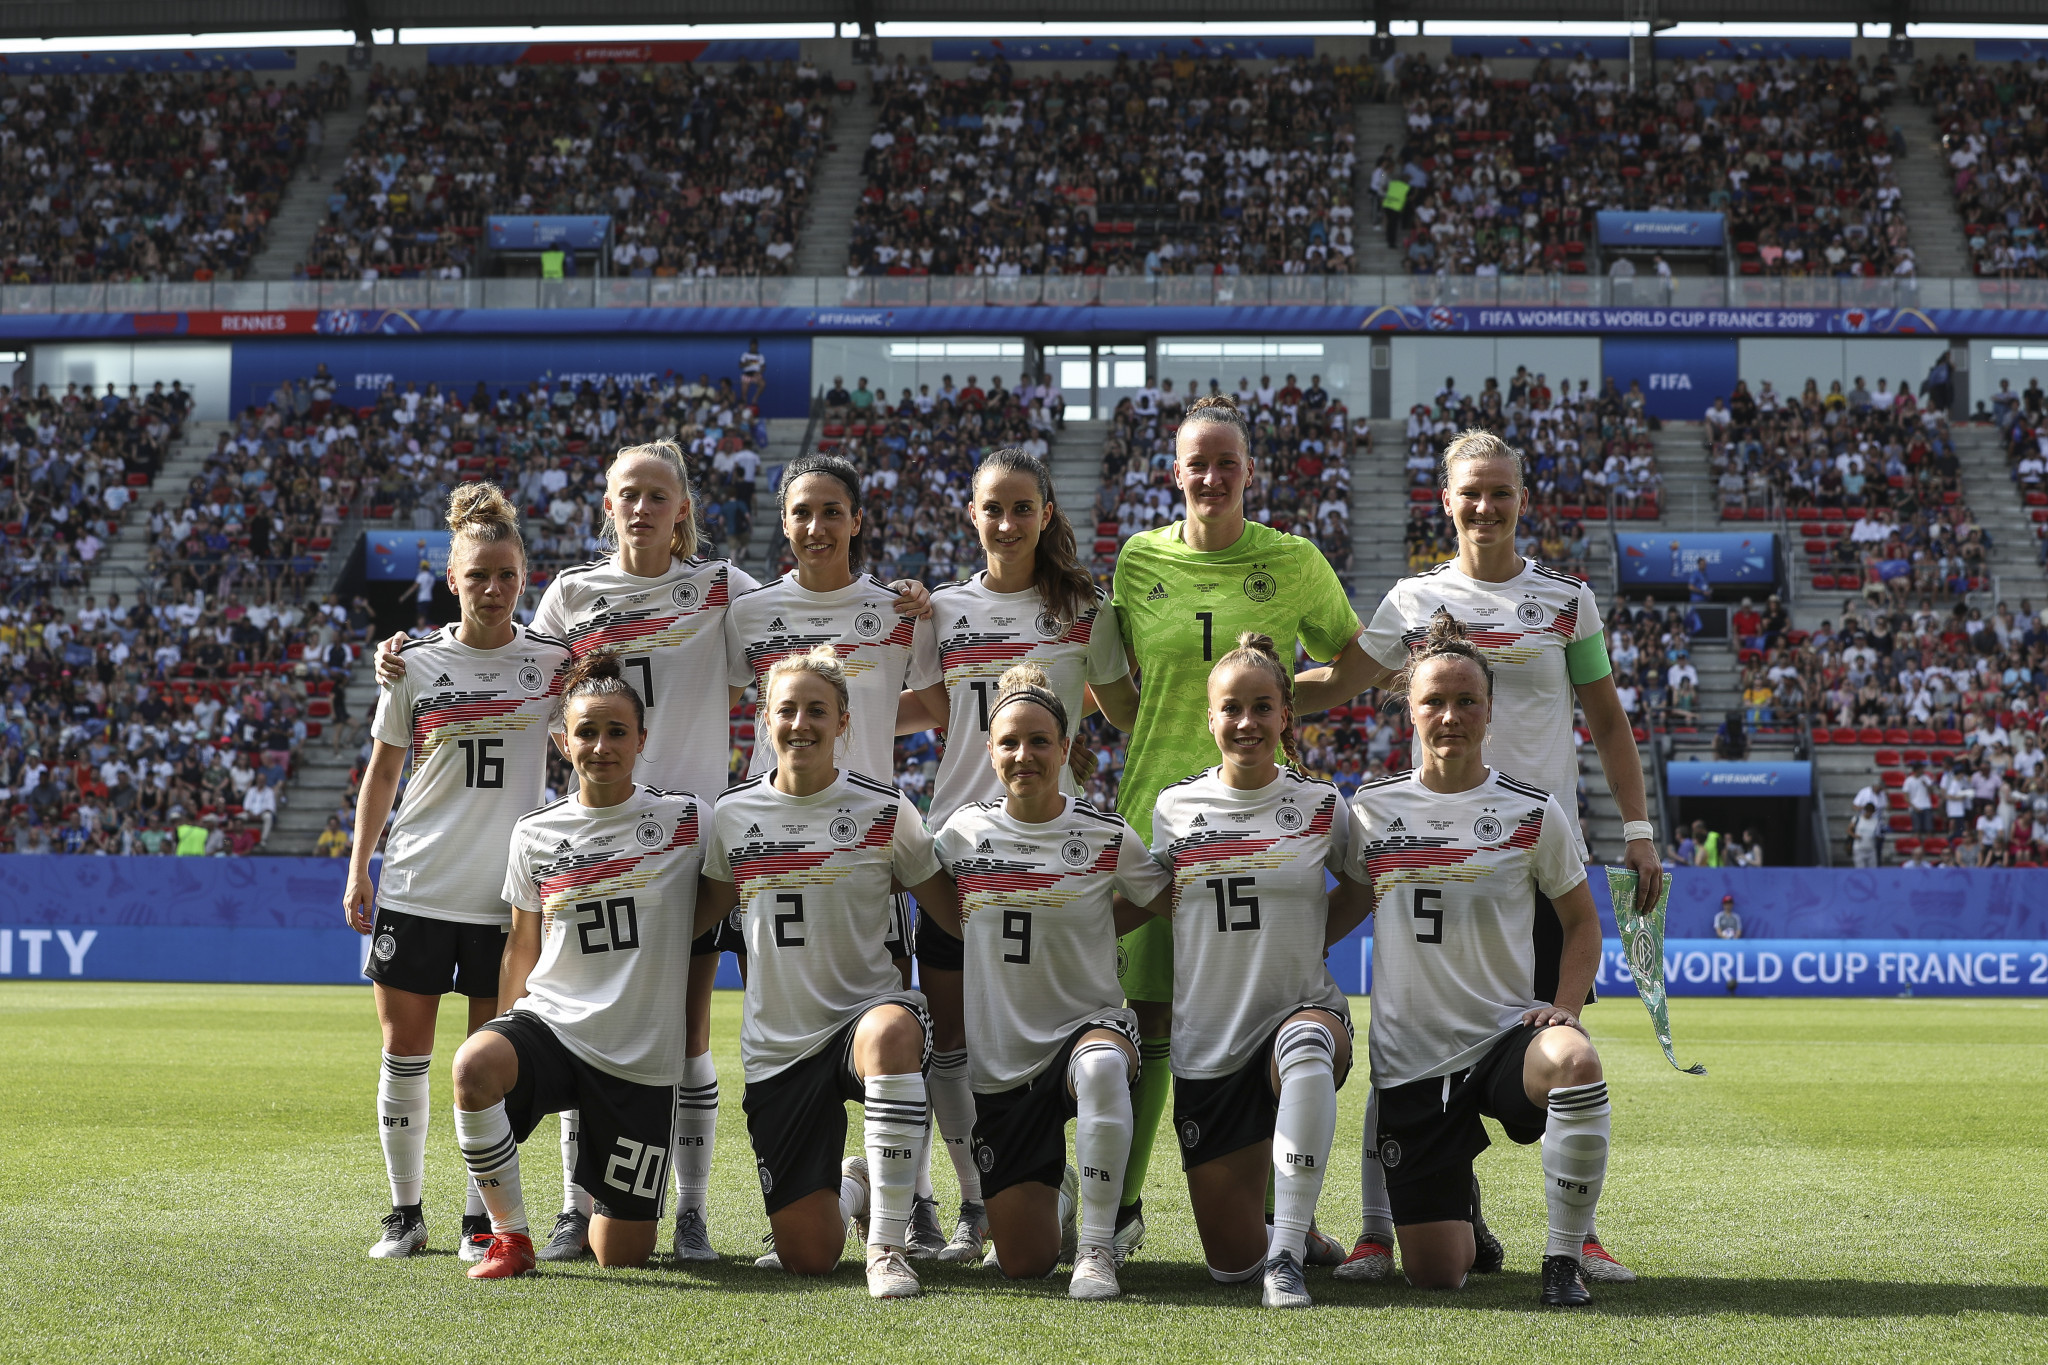 Belgium, Germany and the Netherlands announce joint bid to co-host 2027 FIFA Women's World Cup